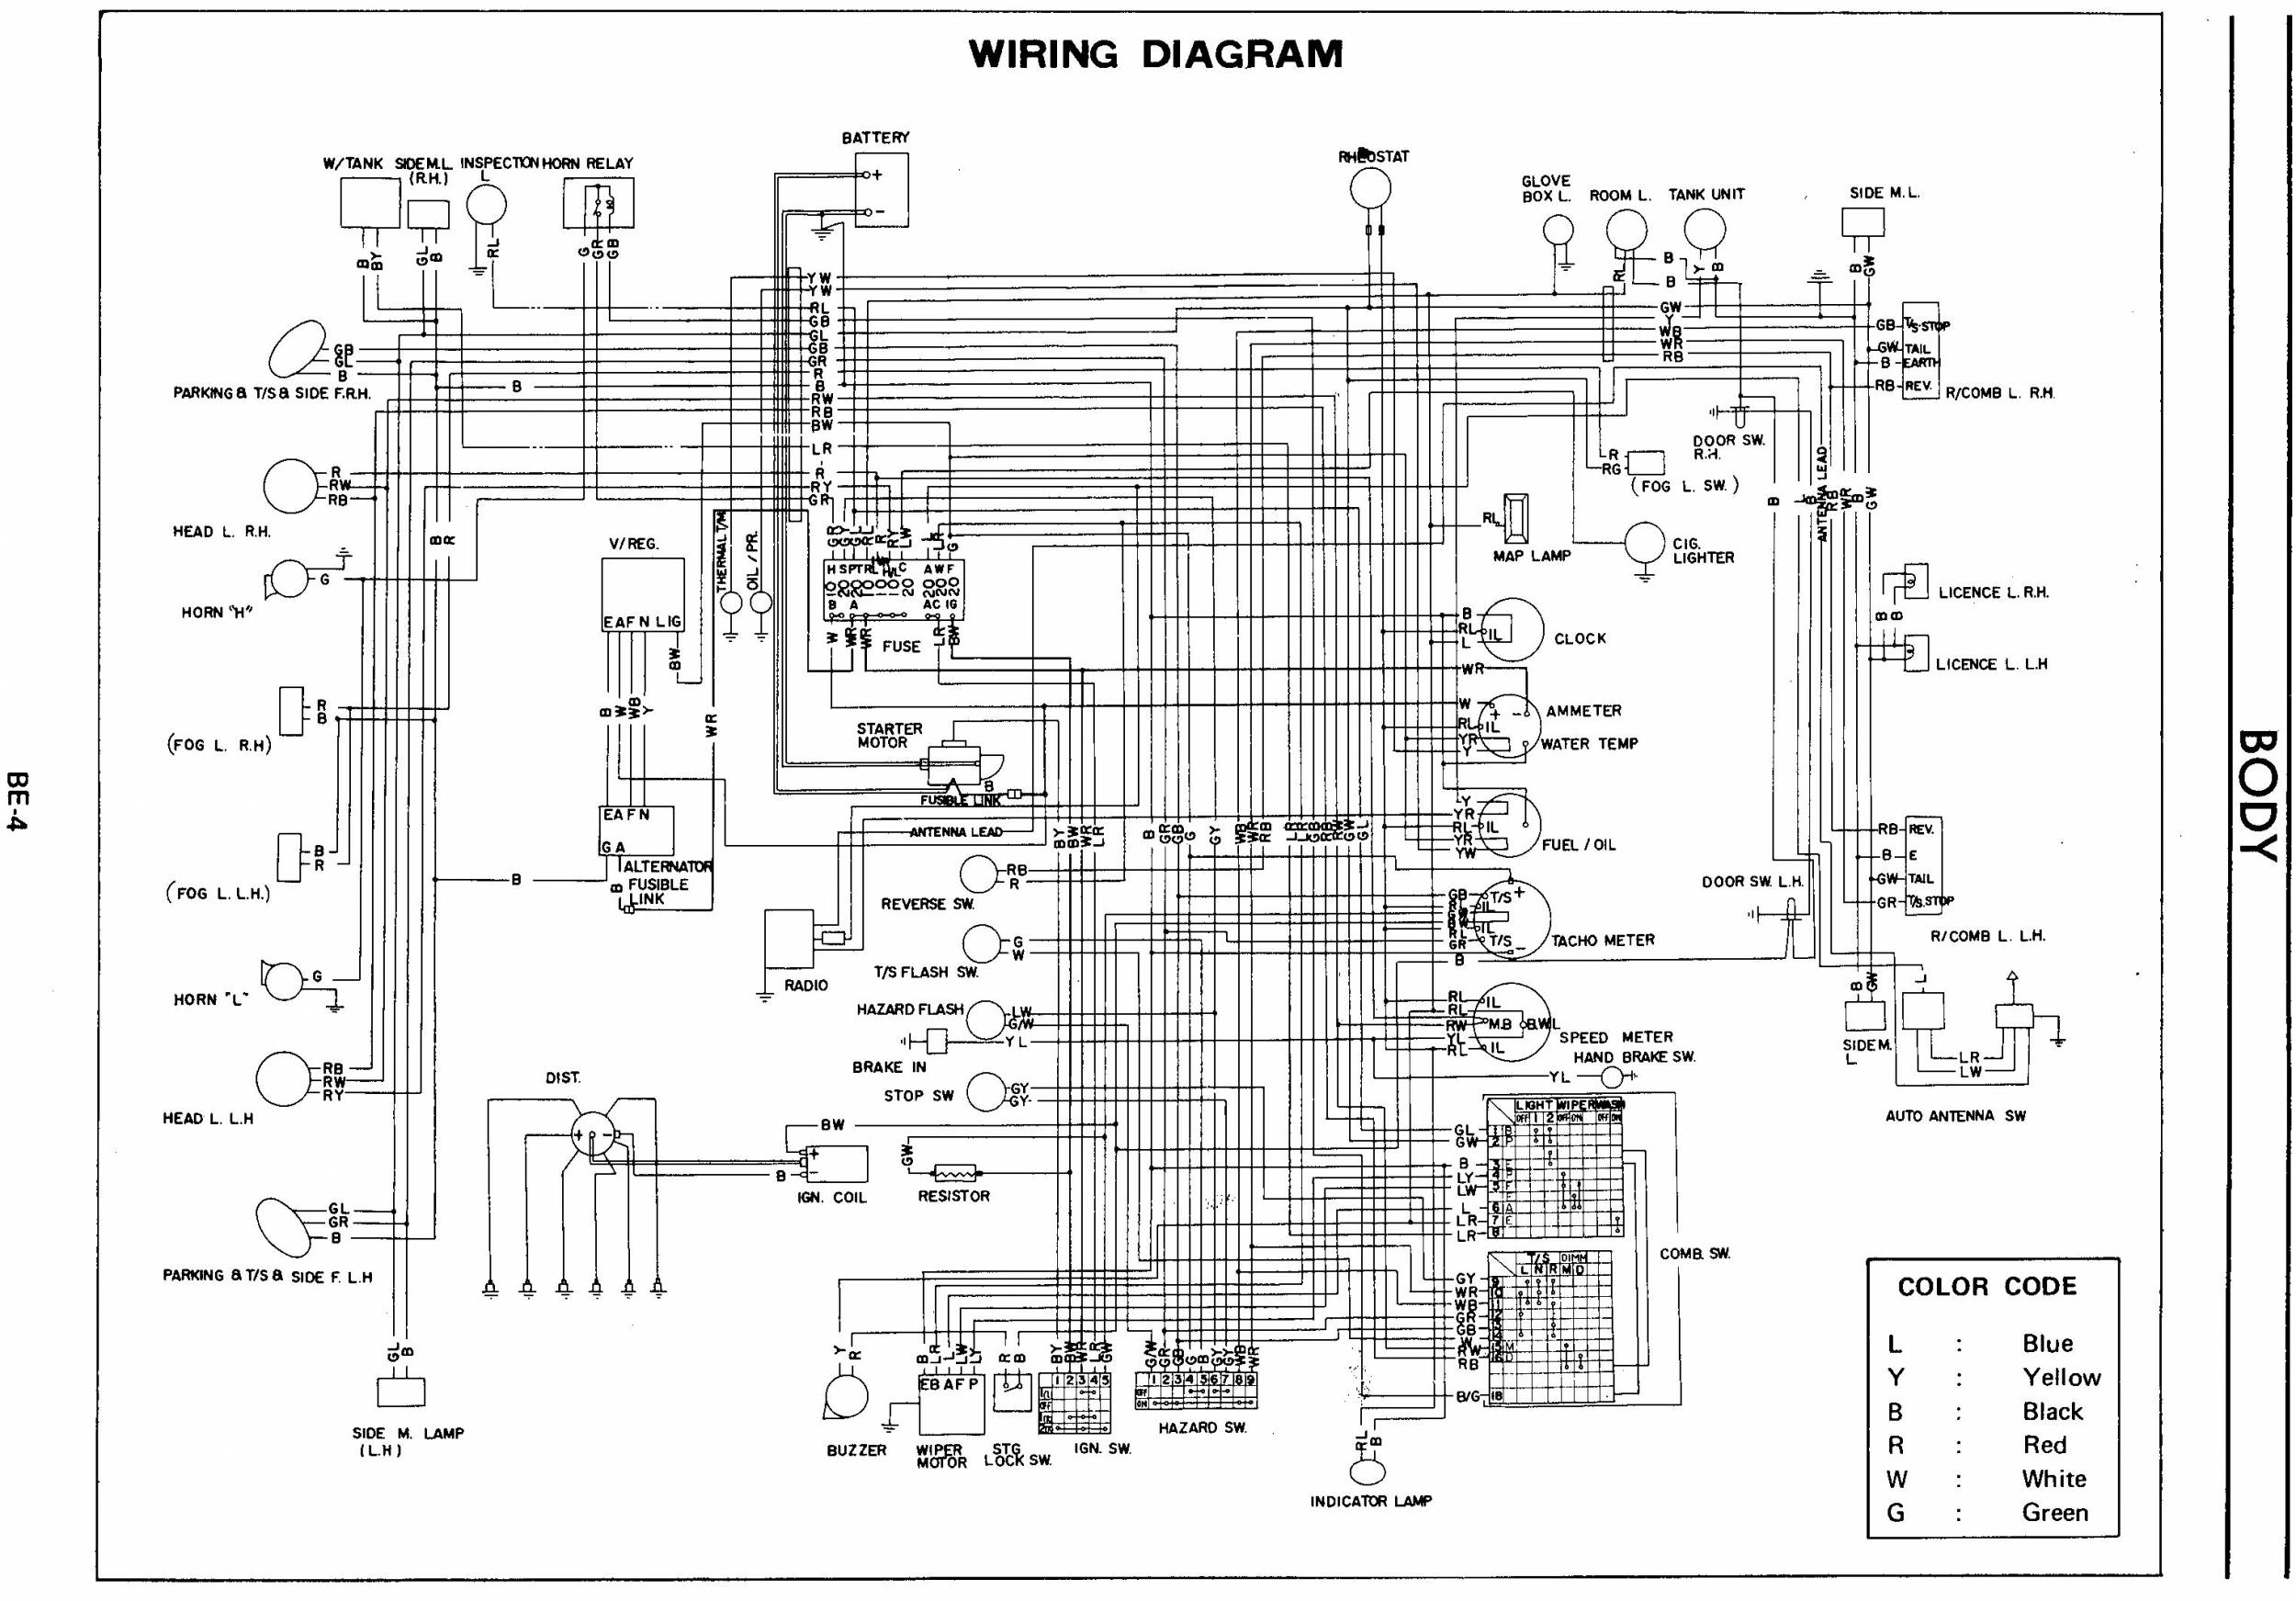 1970 Datsun Alternator Wiring Diagram Trusted Diagrams Jeep Schematic Unique Collection Electrical Circuit Rh Suaiphone Org 3 Wire